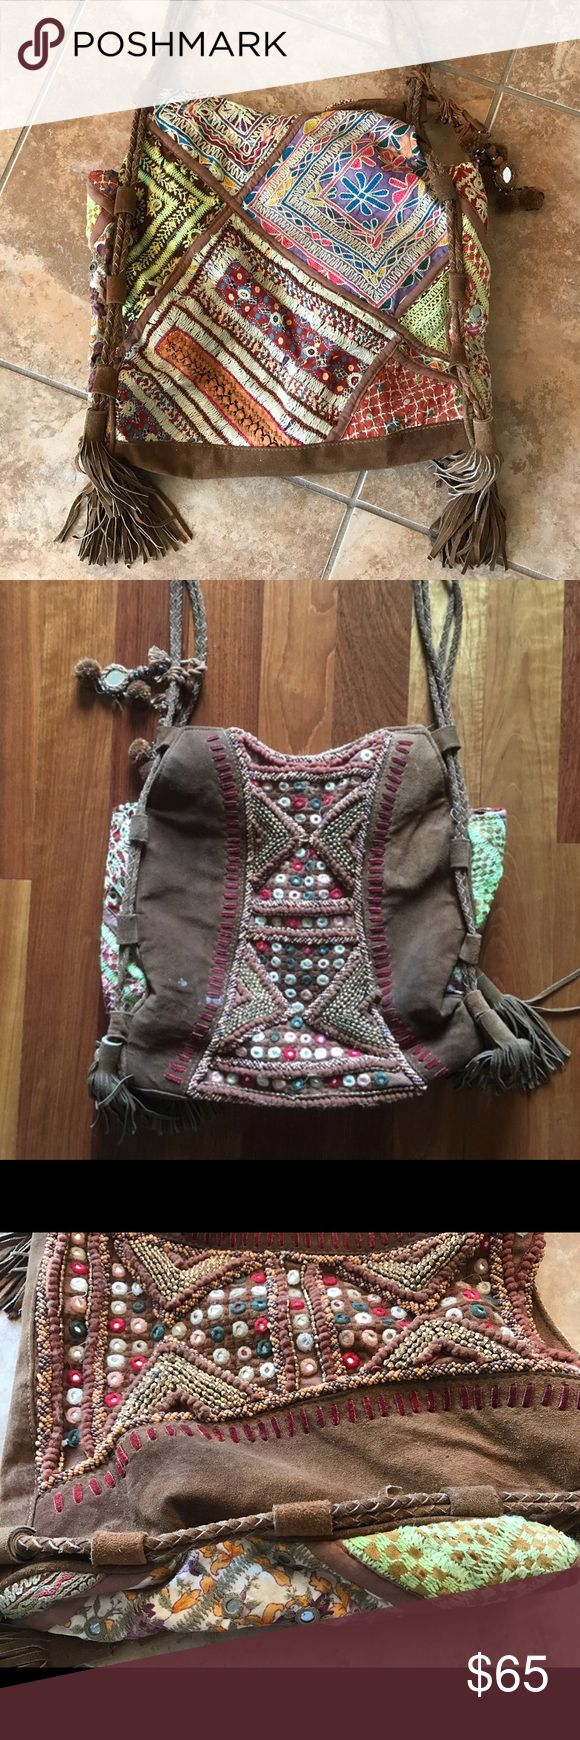 Free People Boho Embroidered Bag Free People Boho Embroidered Bag. So unique and beautiful! One side with gorgeous embellishments and bright colors and the other side with embellishments up the middle. Bright embroidery on the sides. I believe it is suede. Tassels on both sides and braided long straps. So many bells and whistles! 🙃 May be worn on one shoulder or even as a cross body. Inside with FP tag and pockets, looks to be a wax stain inside and outside (photos 2 and 4). Good condition…